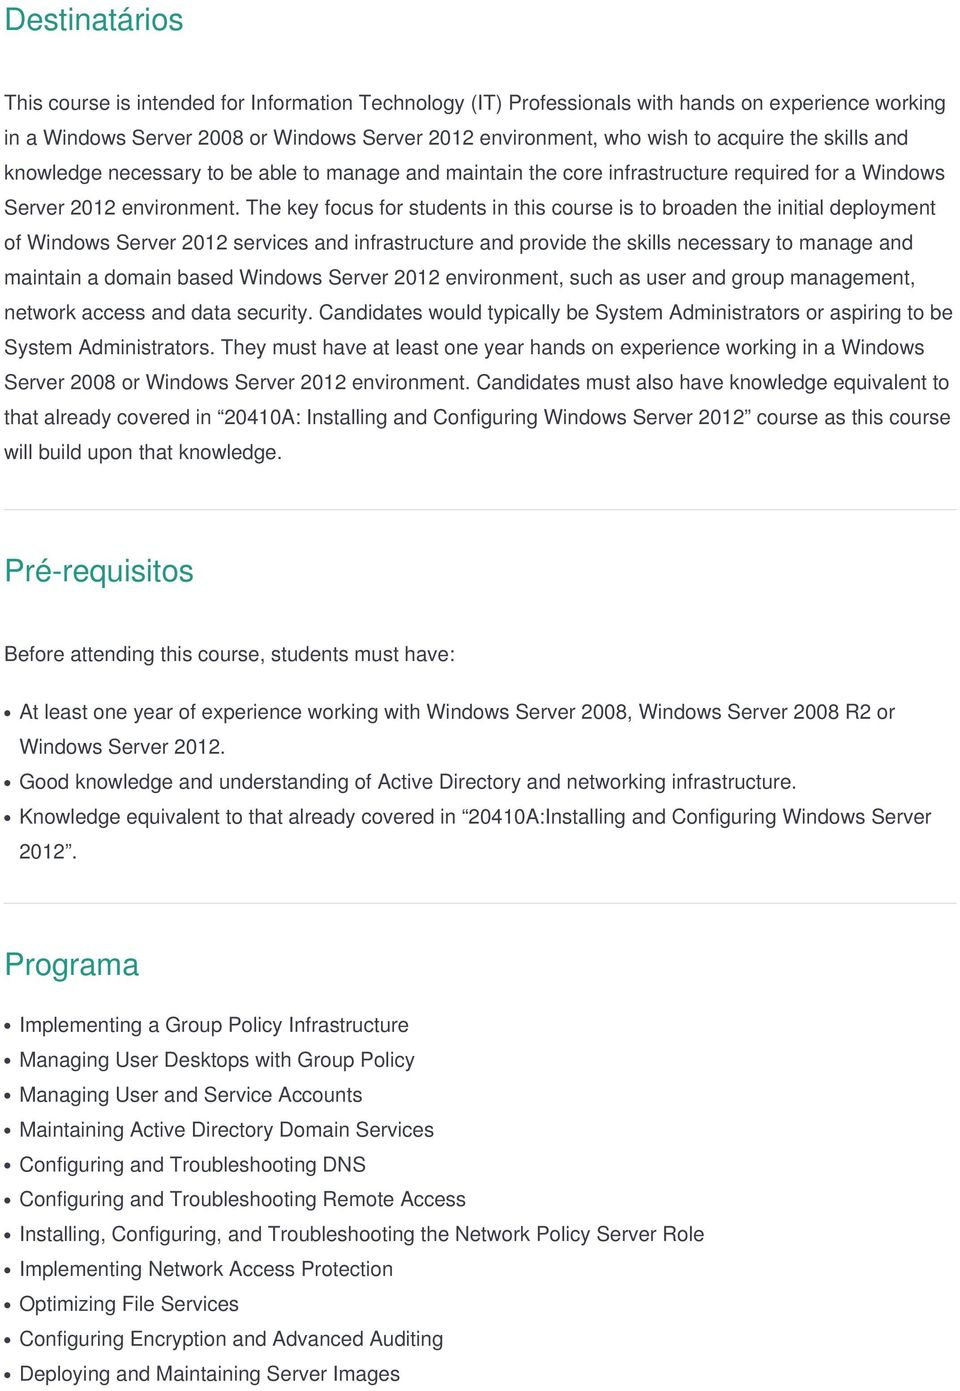 The key focus for students in this course is to broaden the initial deployment of Windows Server 2012 services and infrastructure and provide the skills necessary to manage and maintain a domain